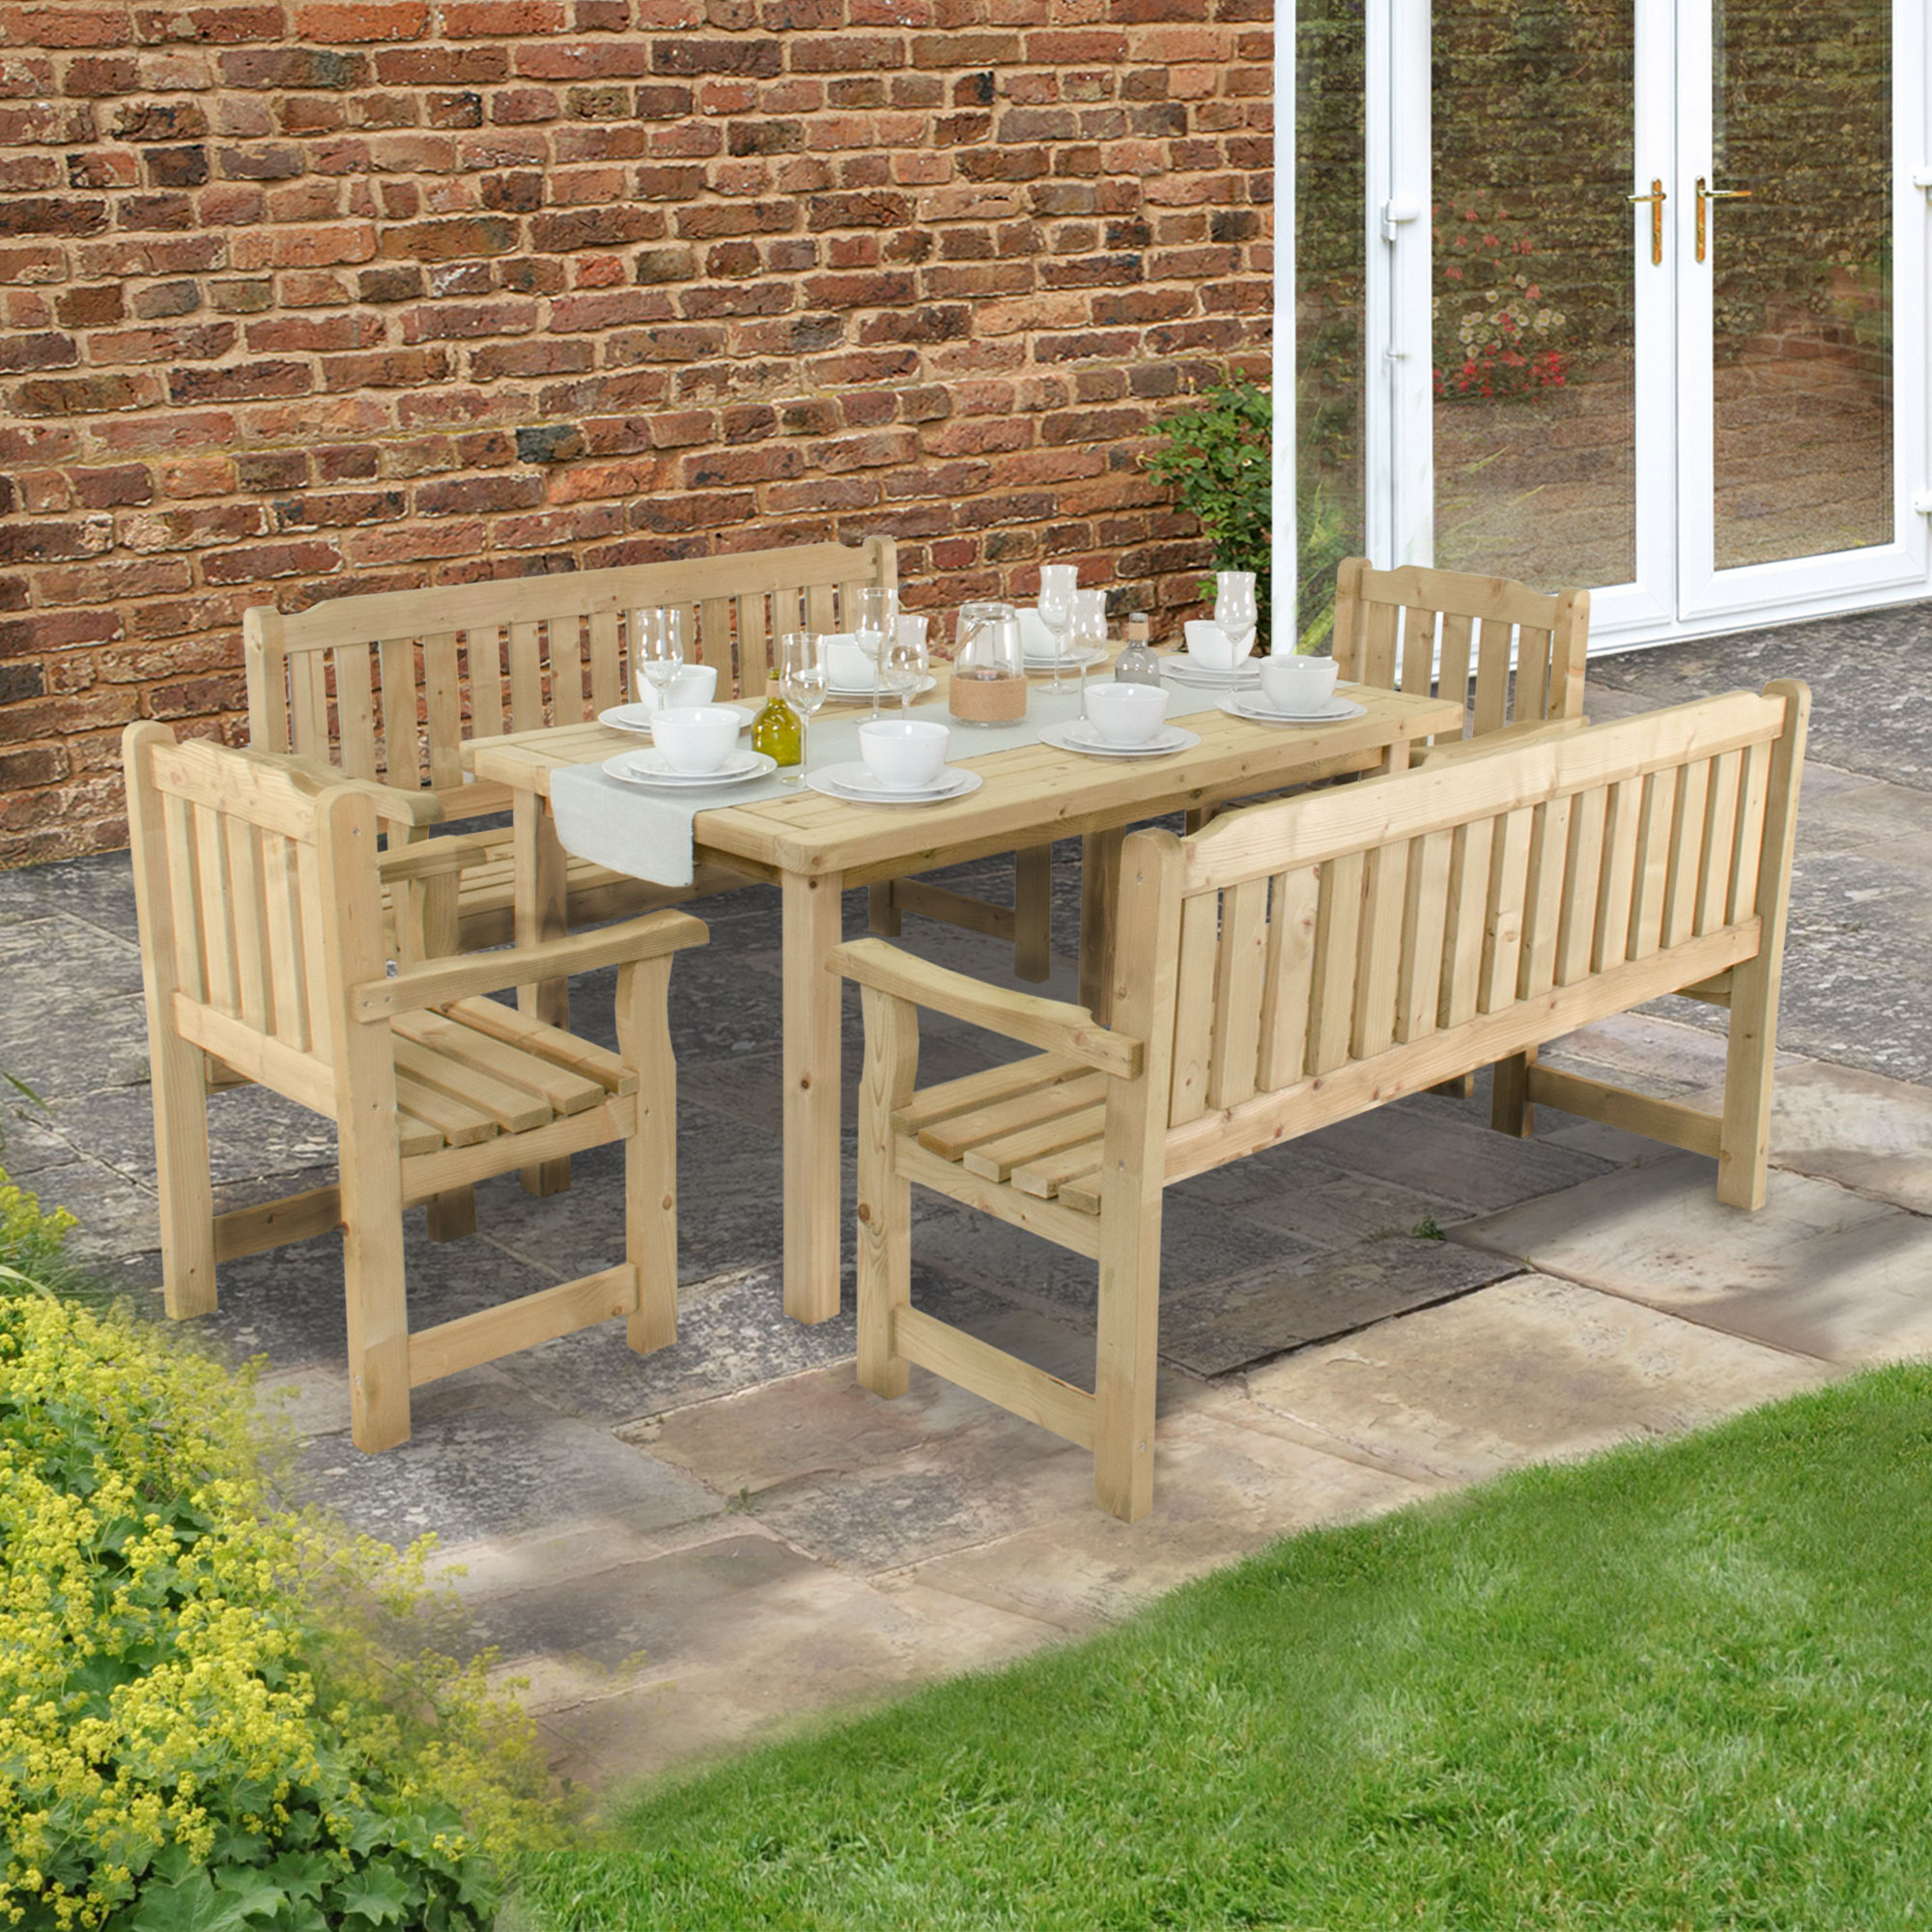 bce76ec2ddf4 Forest Rosedene 8 Seater Wooden Garden Table and Chairs Dining Set   Shedstore